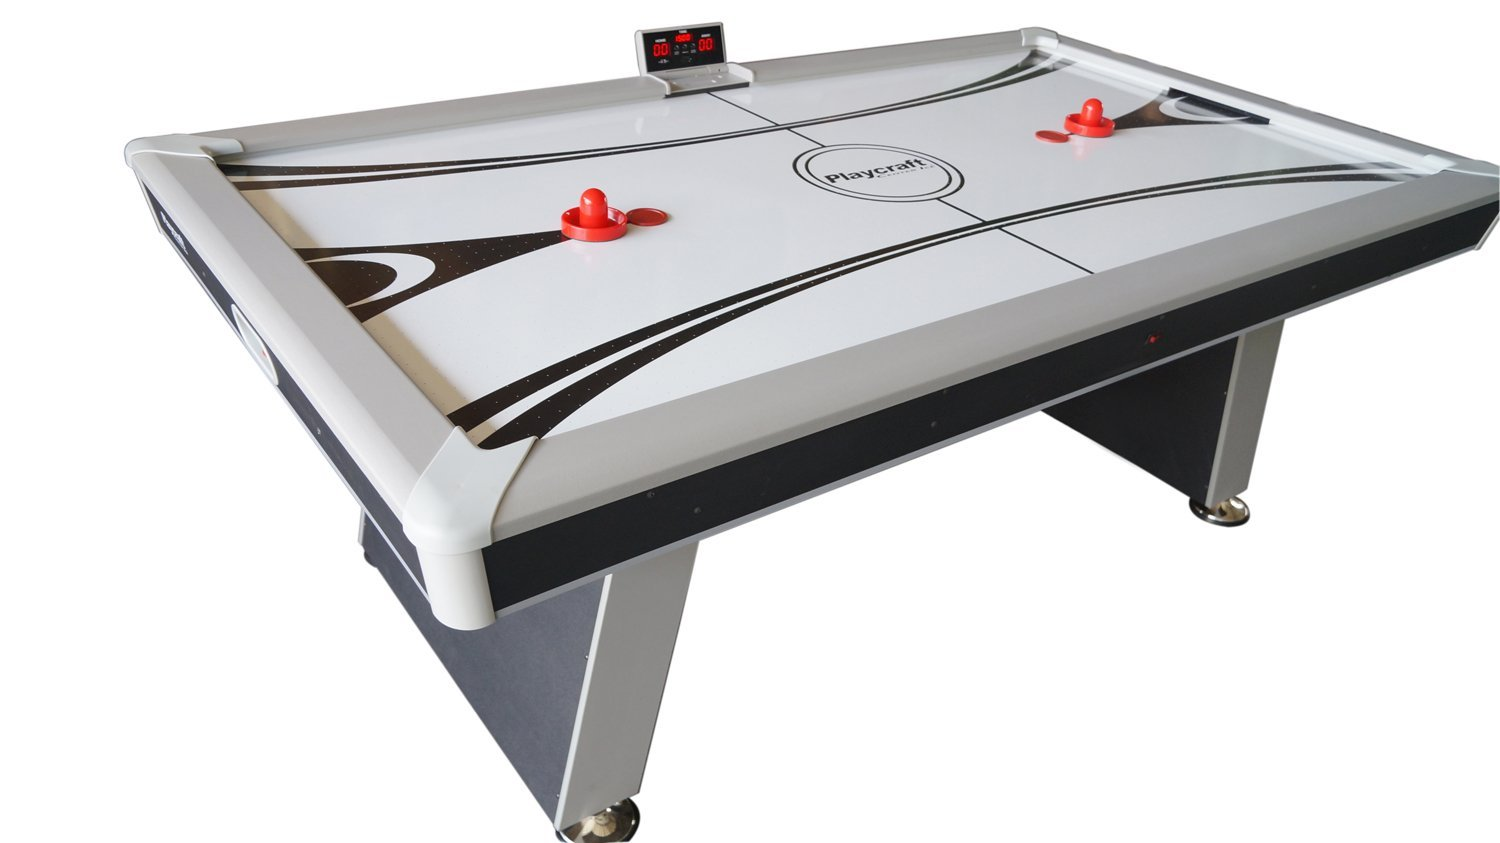 Amazoncom Playcraft Center Ice Air Hockey Table Sports - Air hockey table with ping pong top